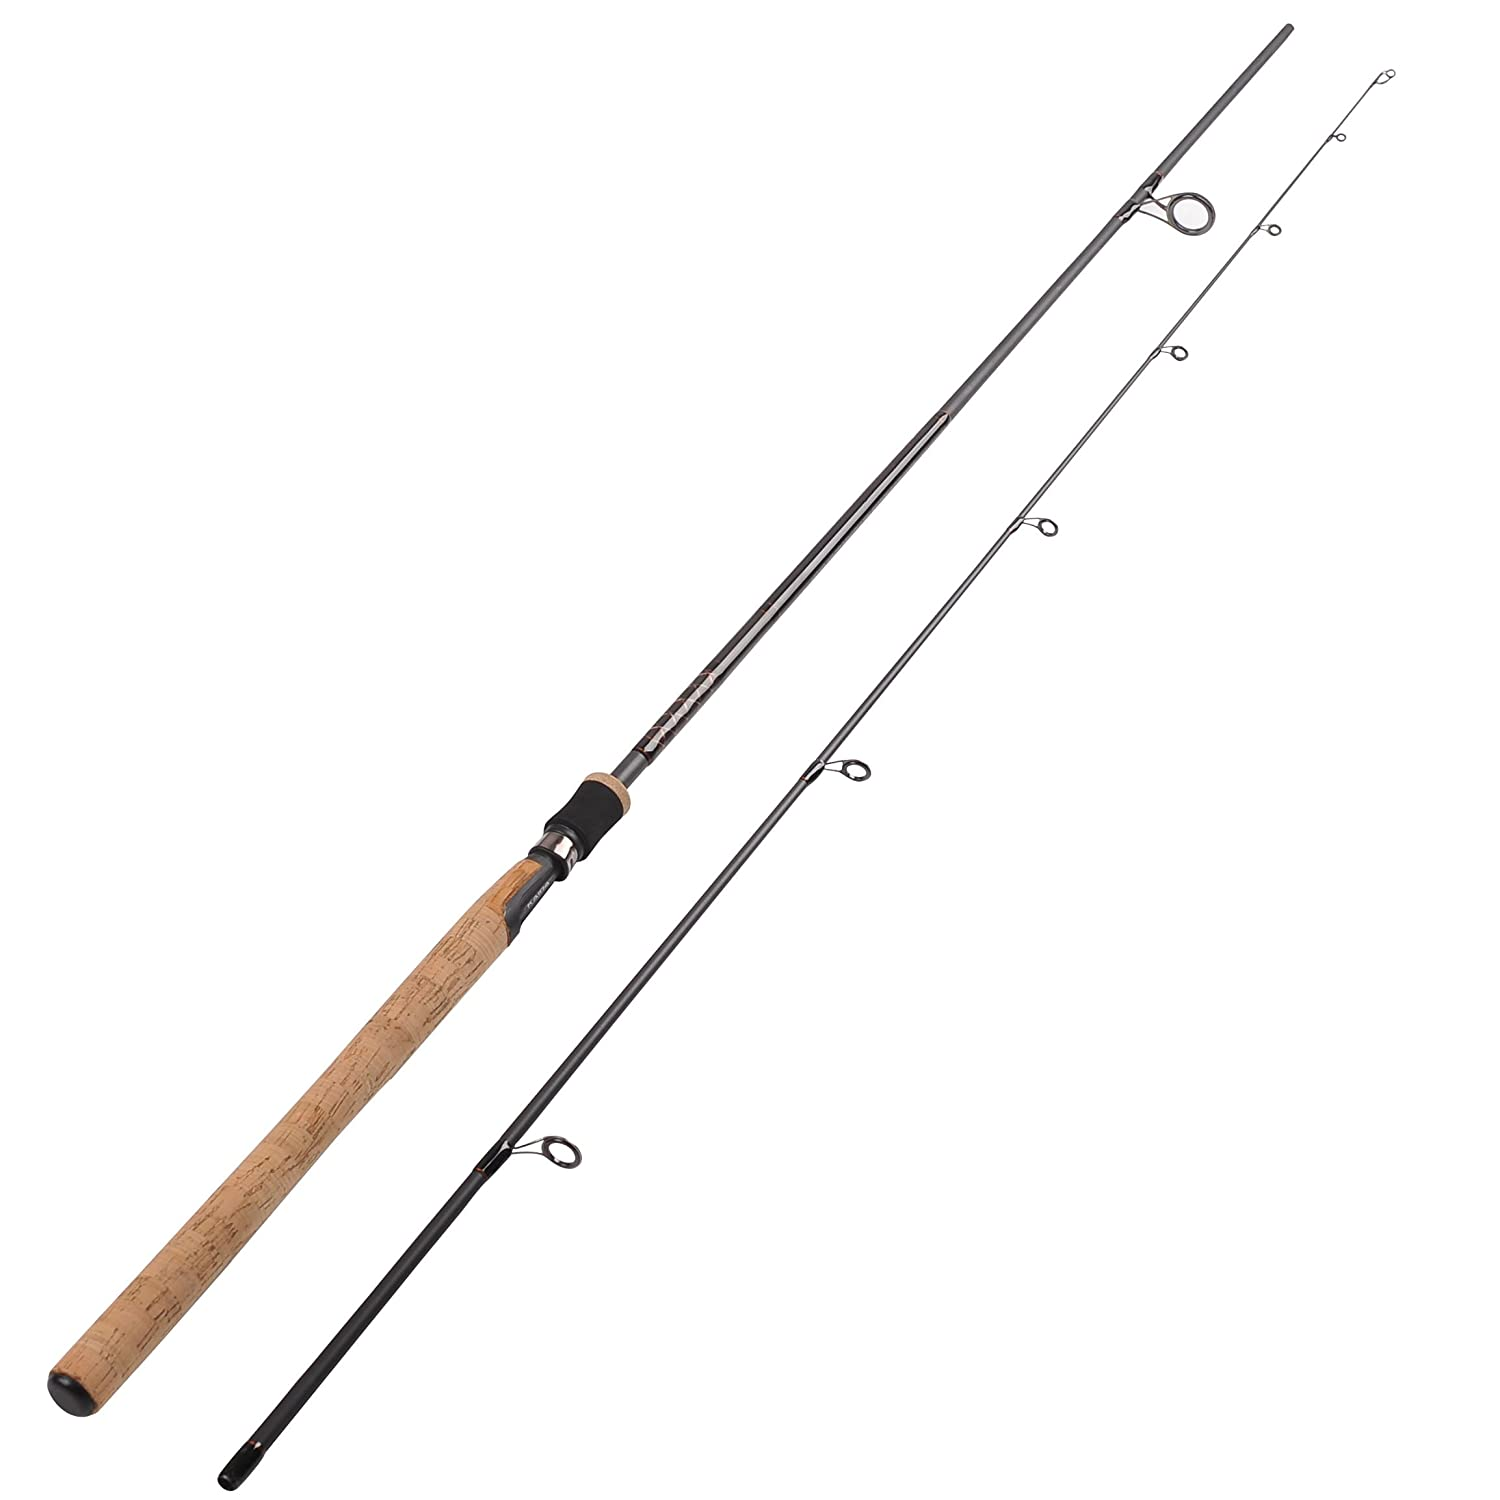 fiblink sea bass fishing rod 2 piece medium heavy spinning